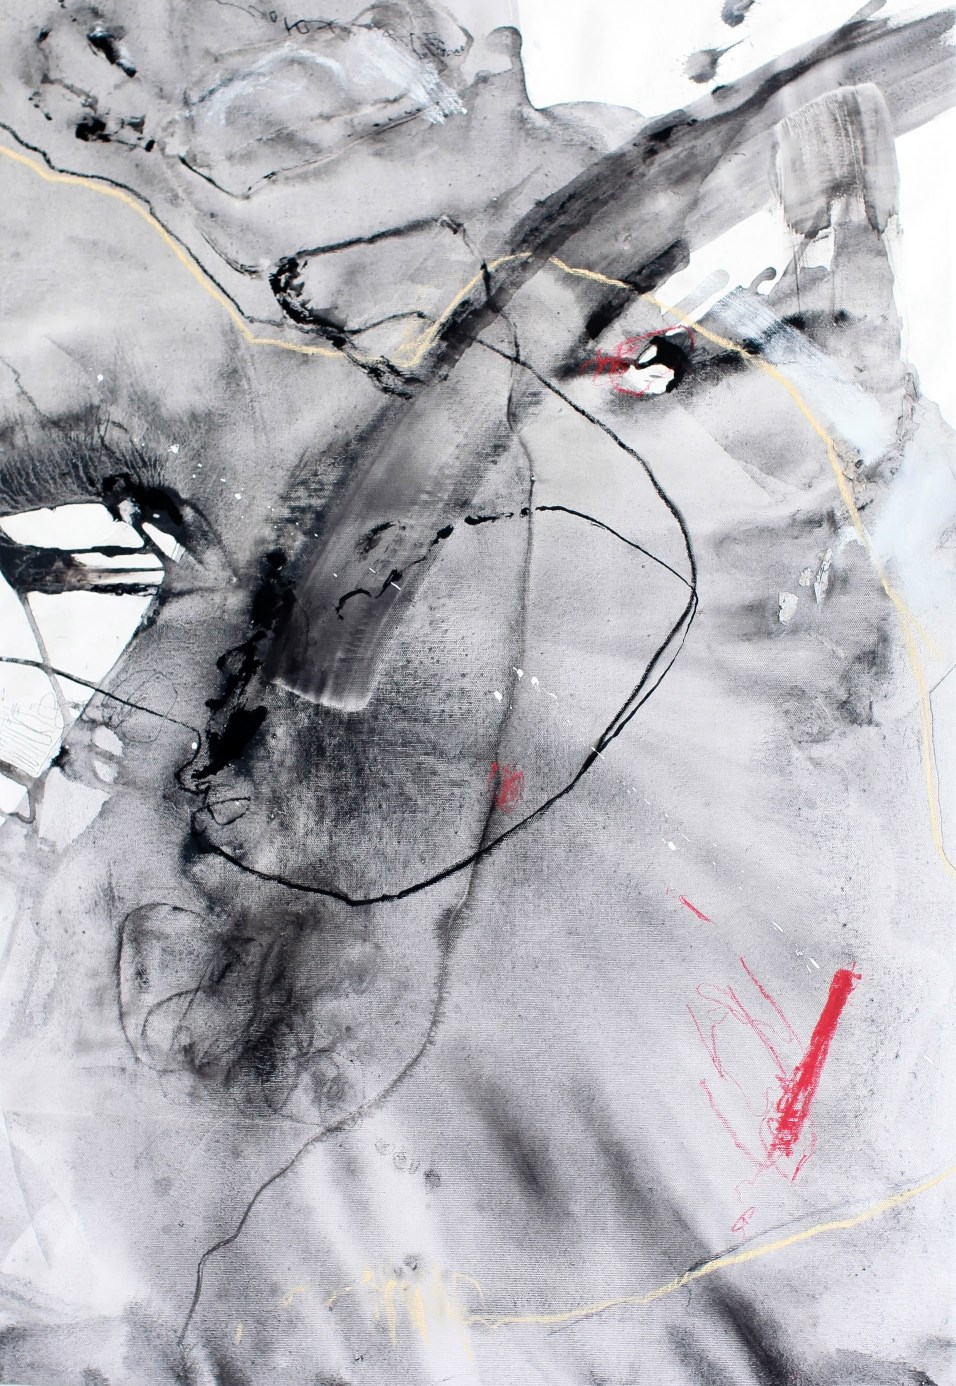 Torn, I - ink, charcoal, and soft pastel on canvas - 34.5x24 inches - 2015